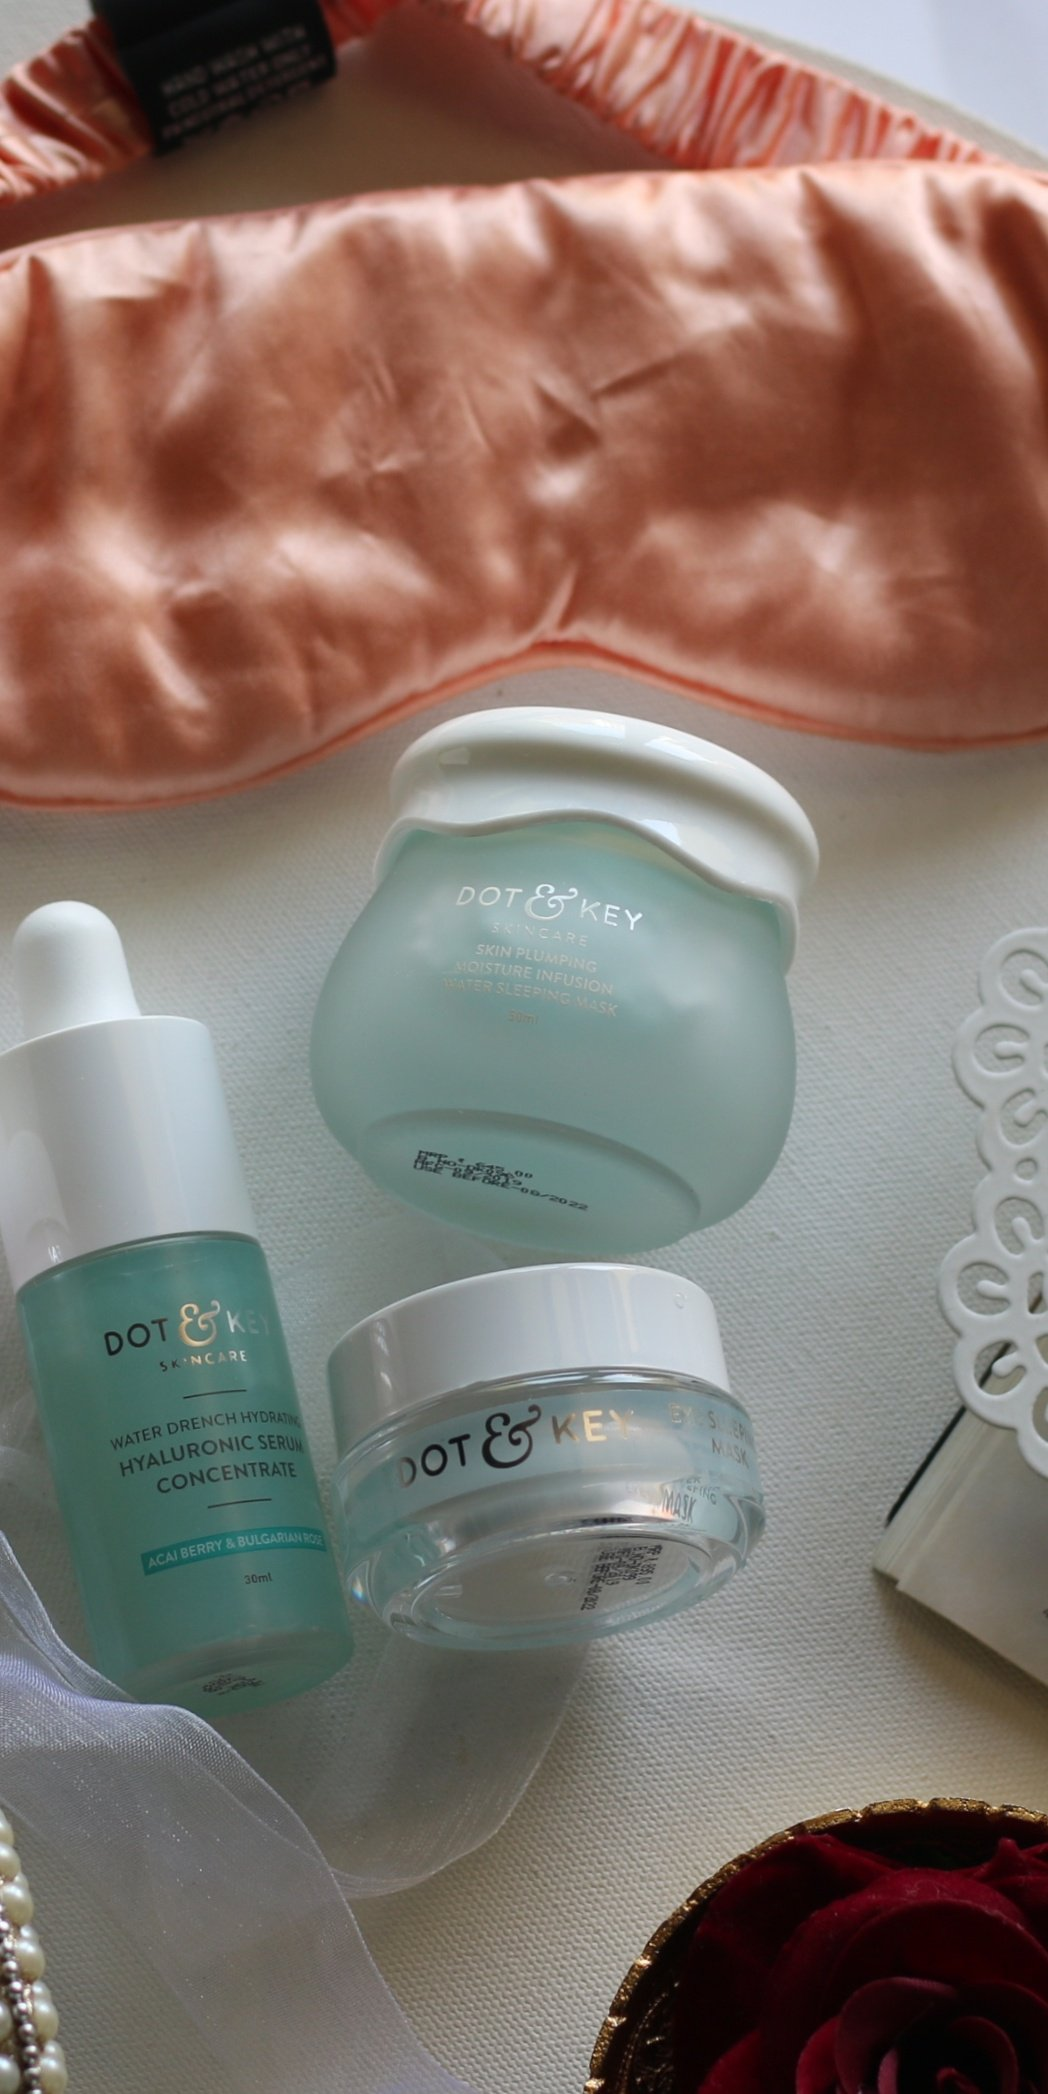 dot and key water drench hydrating hyaluronic serum concentrate review, dot and key skincare, dot & key anti ageing skincare, dot and key face serums, dot and key hyaluronic acid serum, when to start retinol in your skincare routine, choosing right anti-ageing products,dot and key skincare products, how to choose right products for skin, night skincare serum , best ctm routine products, ctm routine for acne prone skin, skincare for pores, skincare products for anti ageing, dot and key eye cream review, dot and key eye sleeping mask, dot and key sleeping mask, dot and key overnight mask, dot and key face mask, dot & key skin plumping moisture infusion water sleeping mask review,depuffing eye cream concentrate review,  eye cream, under eye cream, dark circles, puffy eyes, antioxidant rich eye cream, depuffing eye cream, illuminating eye cream, eye cream for dark circles, eye cream for puffy eyes, plump under eye, hydrated under eye,  overnight eye mask, eye puffiness mask, dark circles removal mask, eye bags, gel texture eye mask, cooling eye mask, line minimizing eye mask, dot and key shadow minimizing eye sleeping mask review, cooling mask, hyaluronic mask, hydration face mask, best overnight sleeping mask,  serum for glowing skin, facial serum, glow serum, dry skin serum